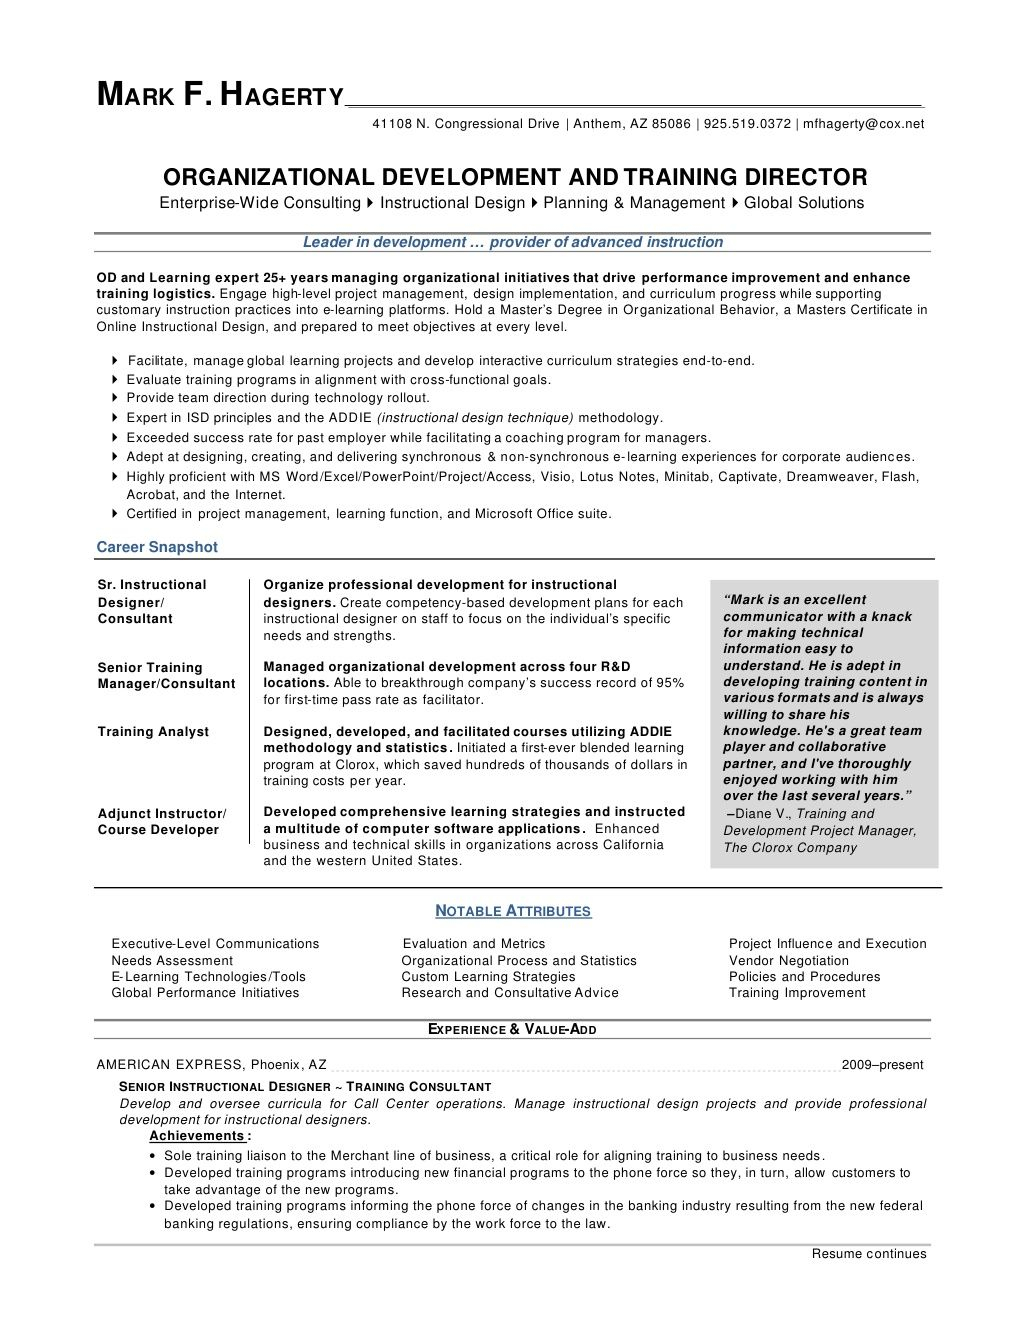 Business Manager Resume Template - Mark F Hagerty Od Training Director Resume by Mfhagerty Via